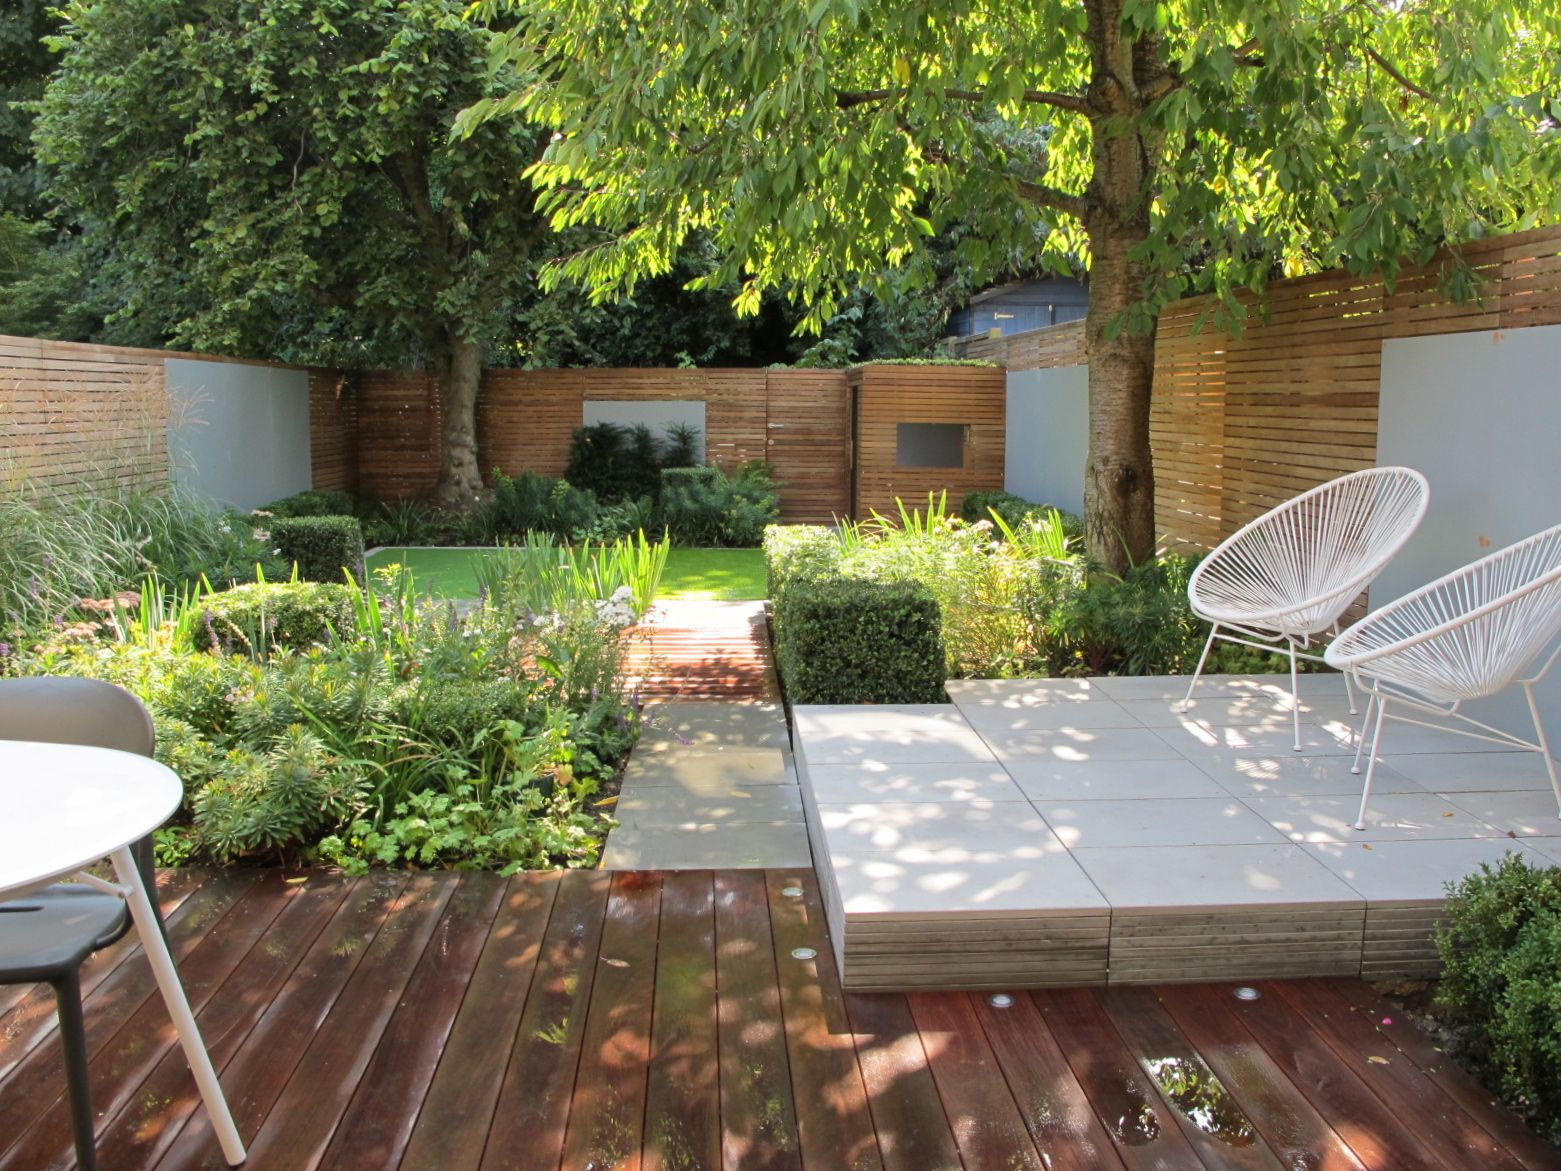 North London Garden As Featured On Alan Titchmarshu0027s ITV Program U0027Love Your  Gardenu0027 / Garden Designer Lucy Willcox